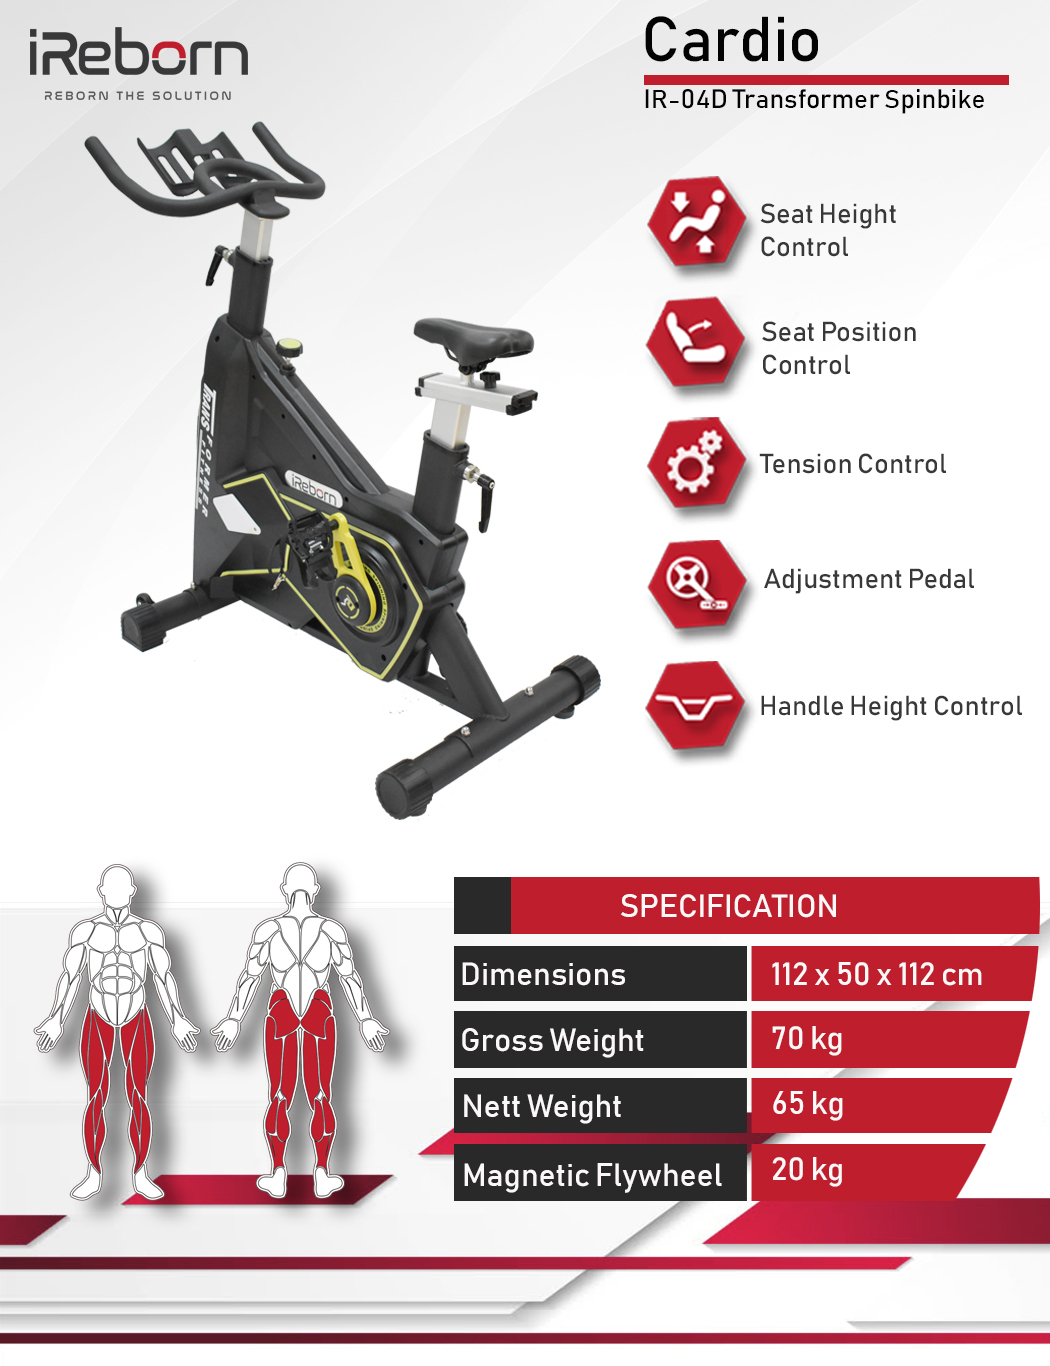 IR-04D Transformer Spinbike 22